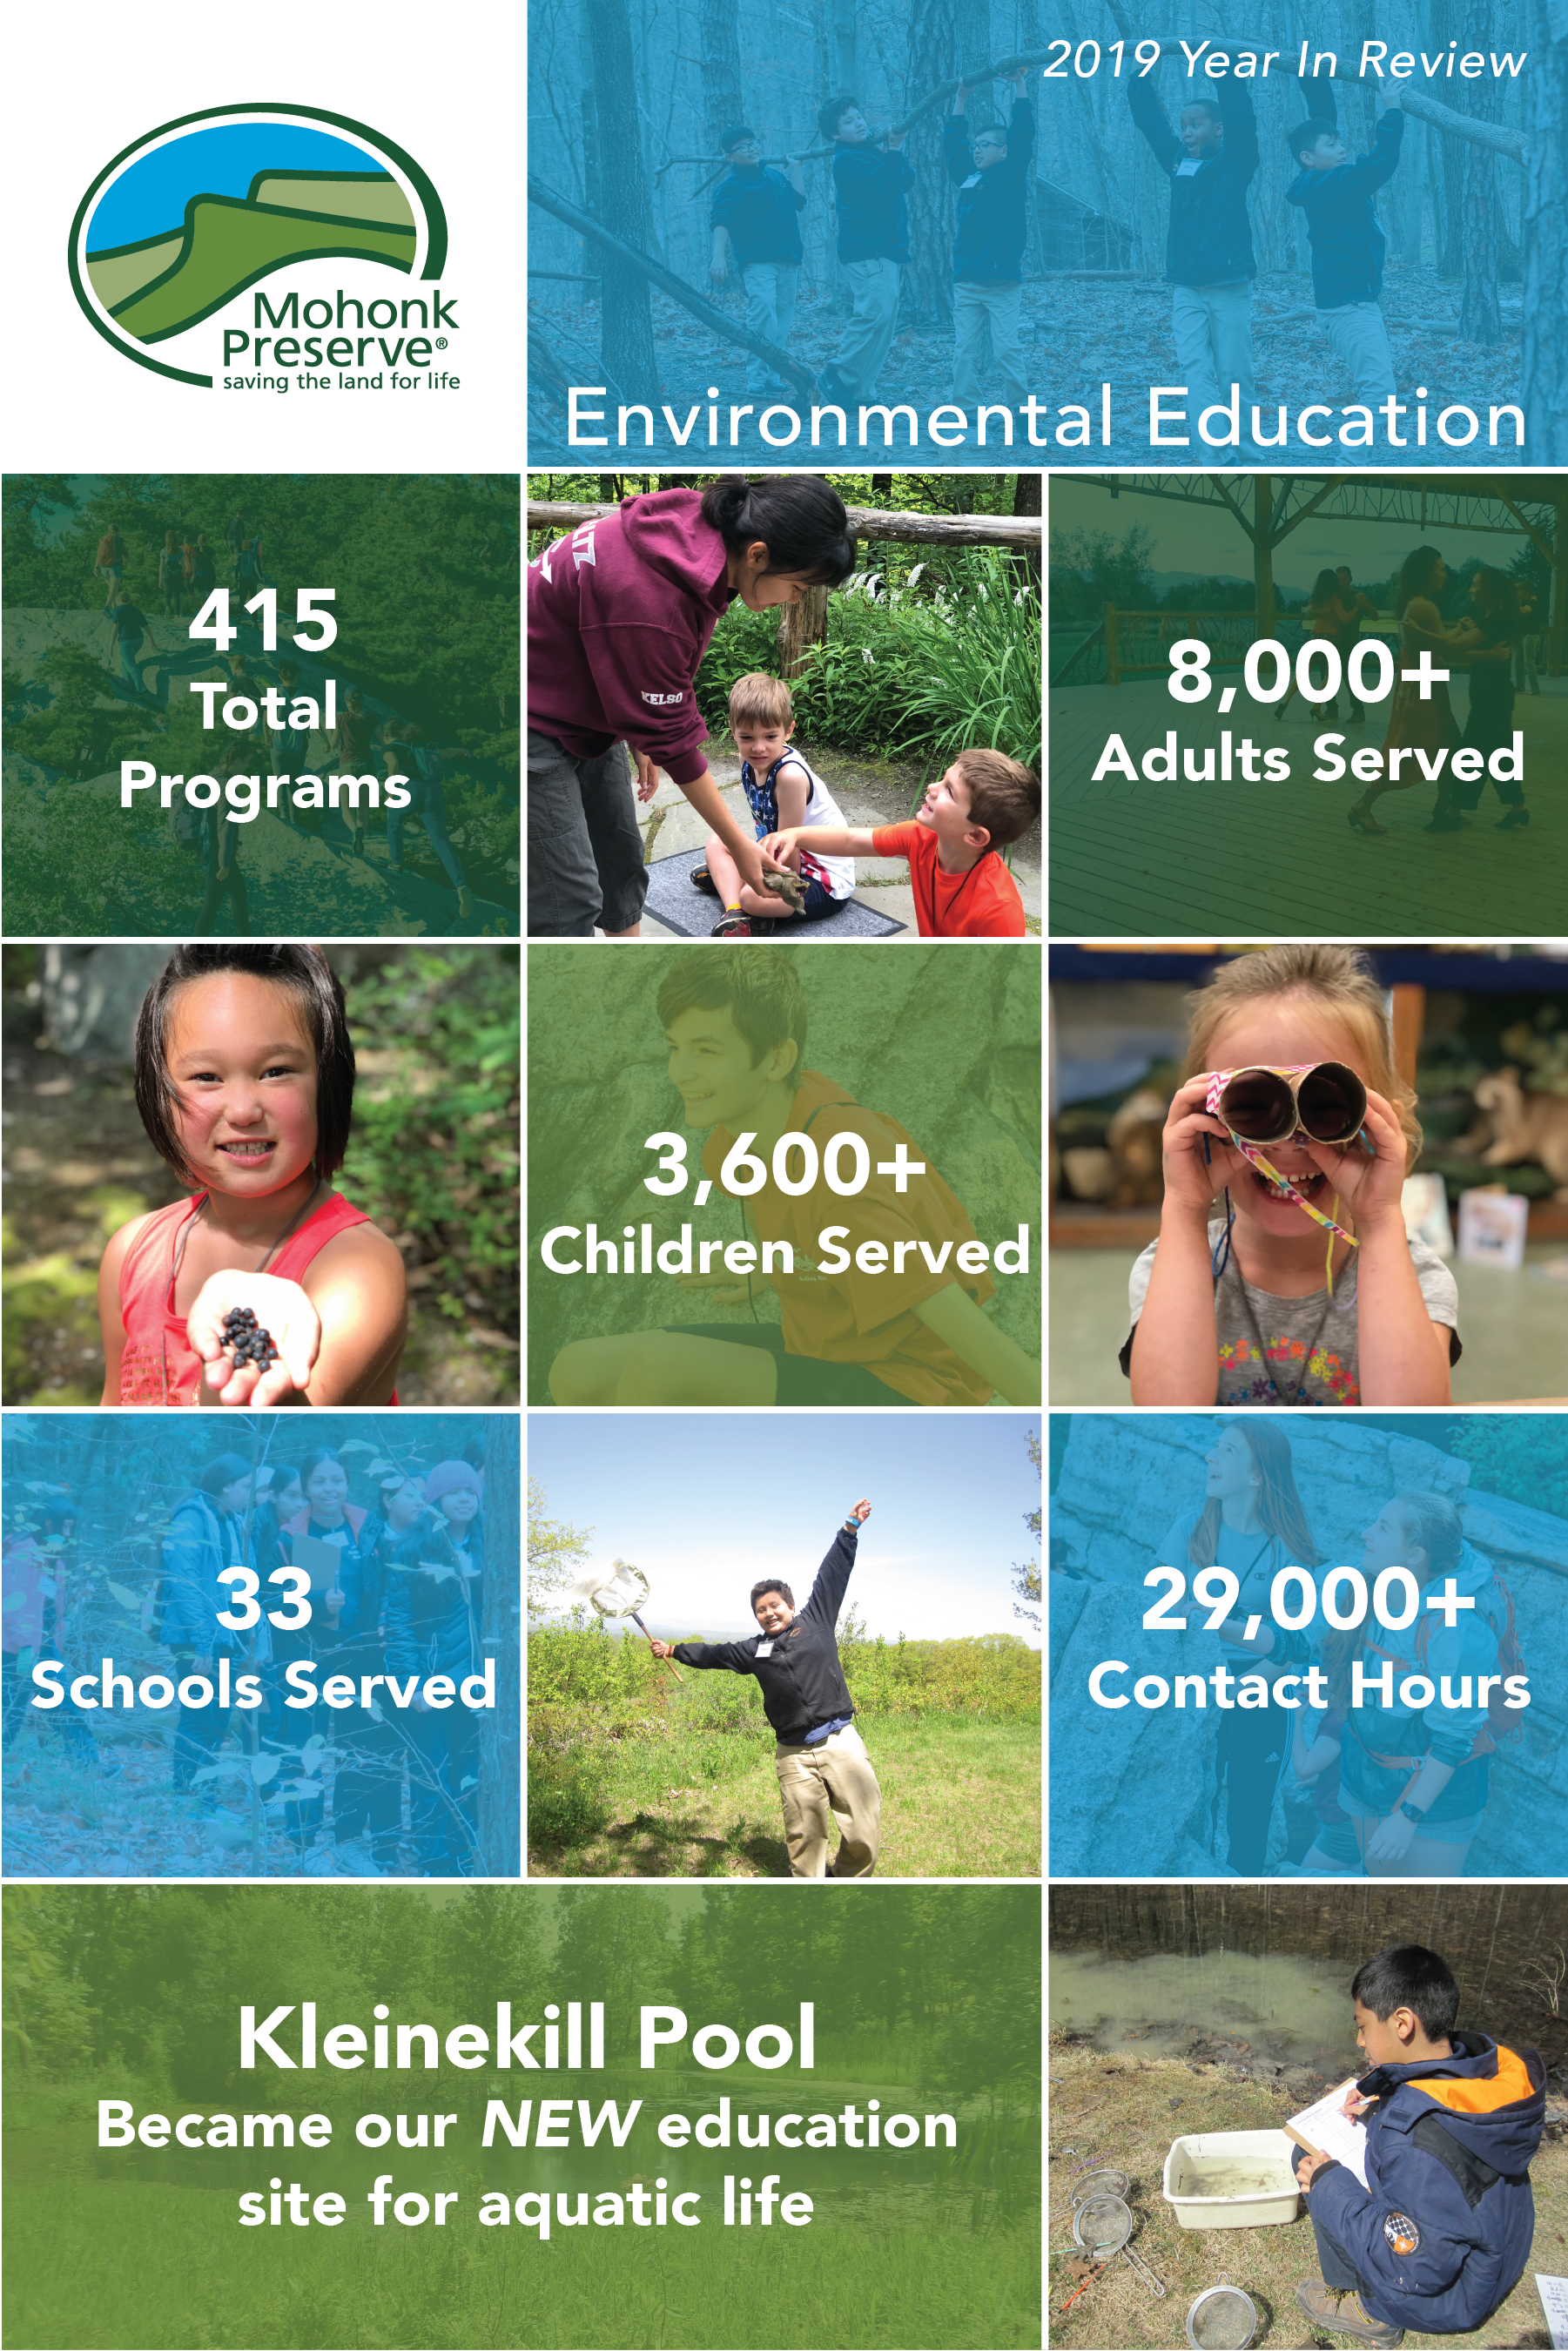 2019 Year In Review: Environmental Education, 415 Total Programs, 8,000+ Adults Served, 3,600+ Children Served, 33 Schools Served, 29,000+ Contact Hours, Kleinekill Pool became our NEW education site for aquatic life